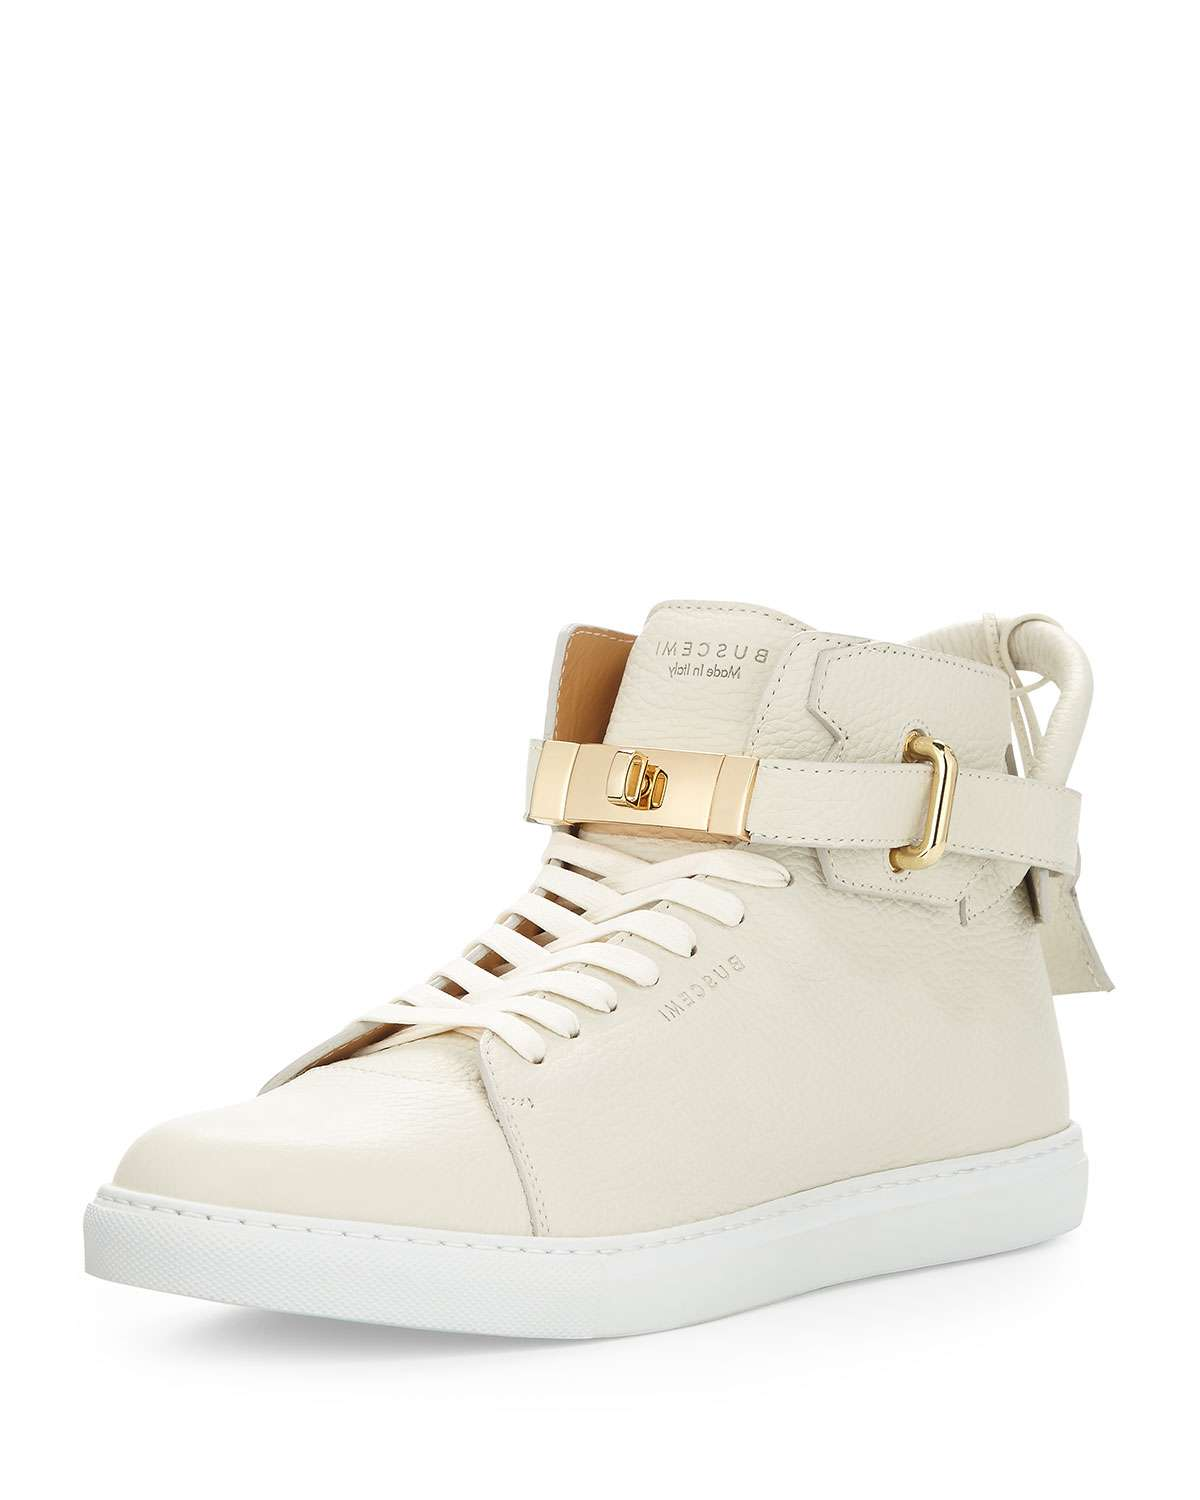 Men's Leather High-Top Sneakers w/ 18k Gold-Plated Hardware, Off White